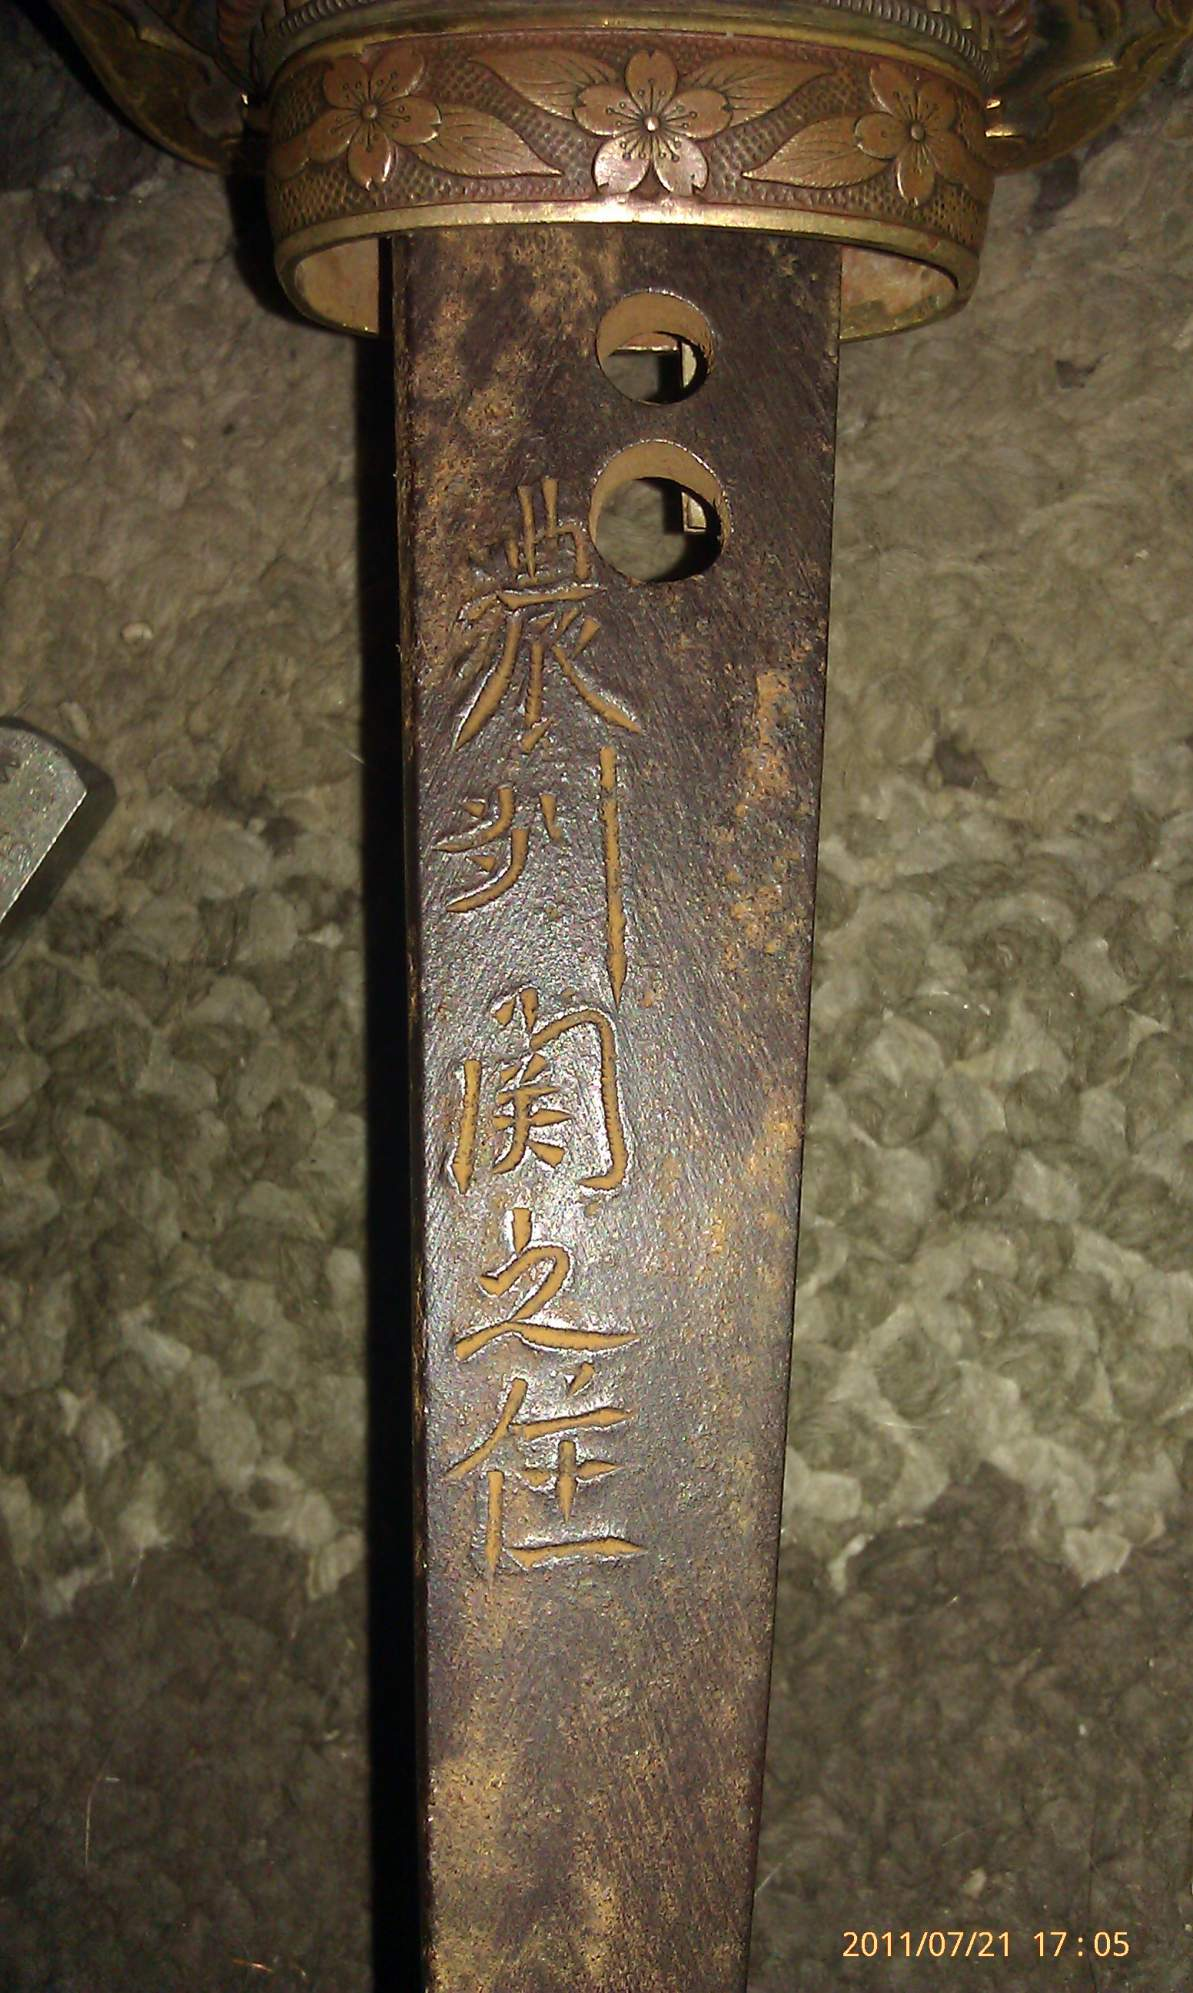 Need Help With Bi Level Exterior And Curb Appeal: Need Help With Signature On WW2 Japanese Katana Sword